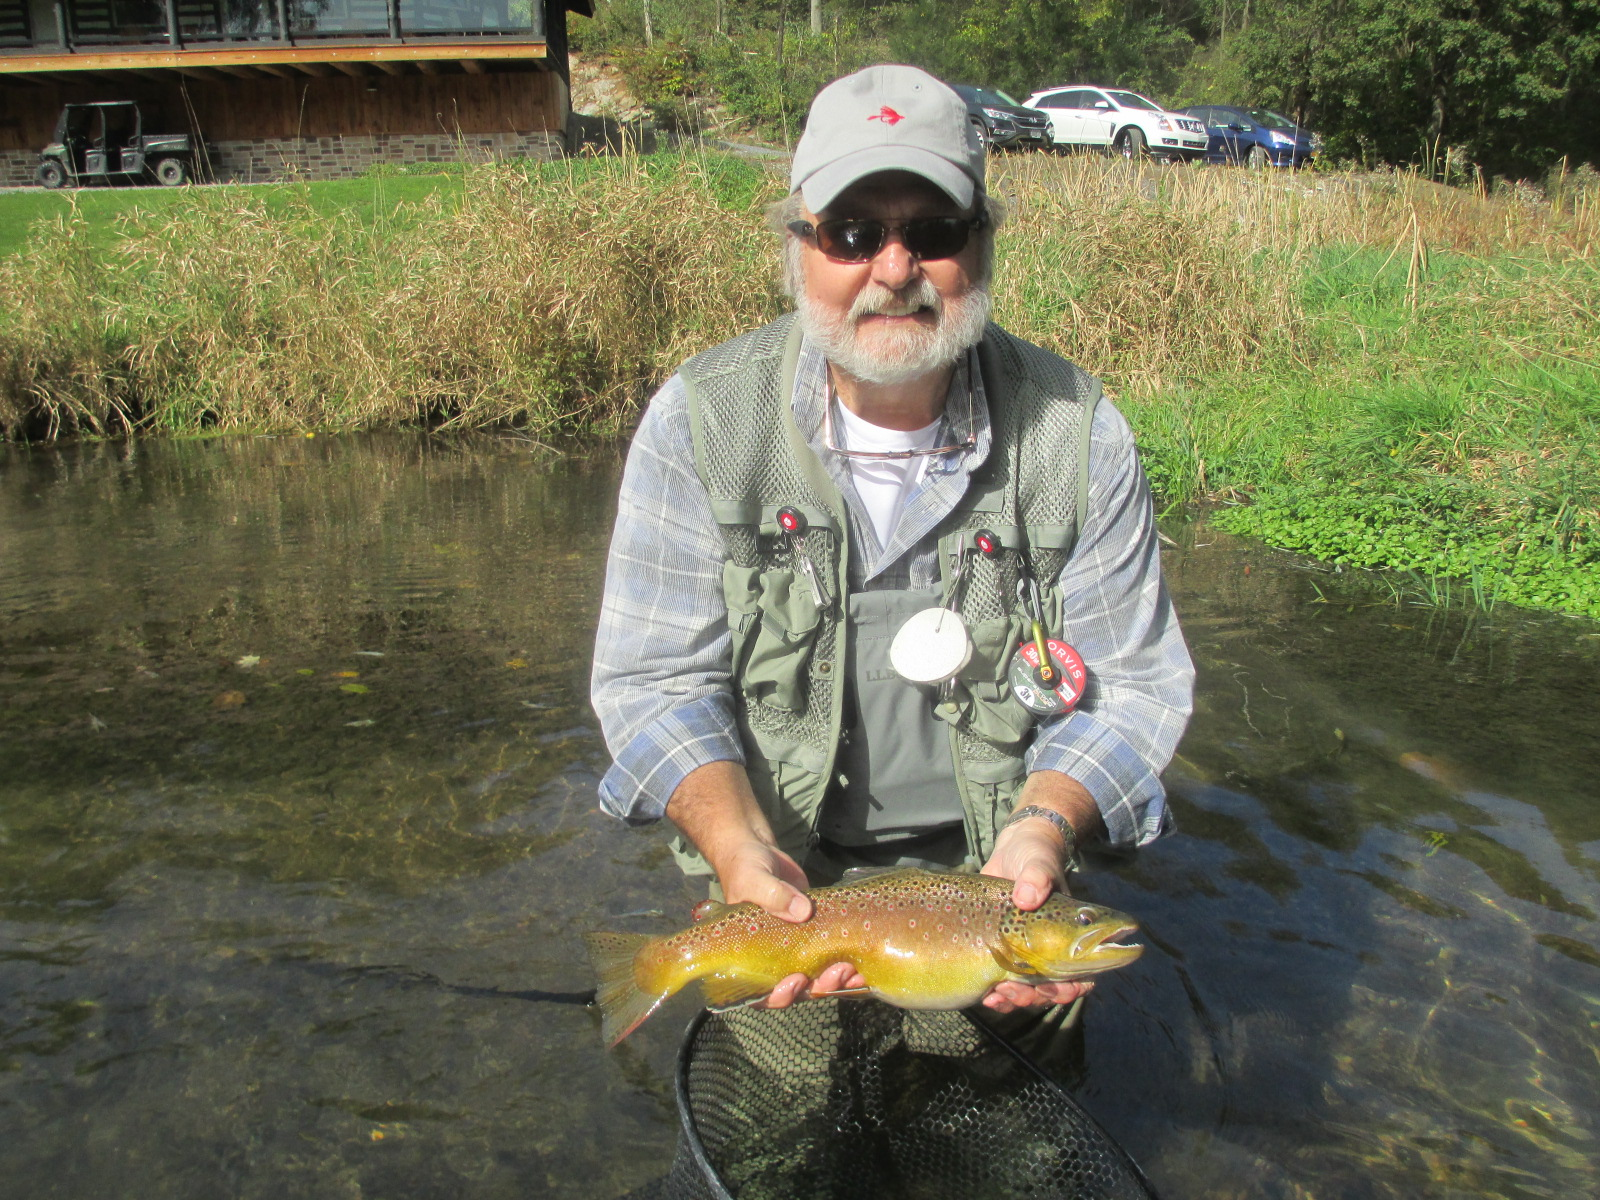 Pa fly fishing october on spruce creek trout haven for Trout fishing pa